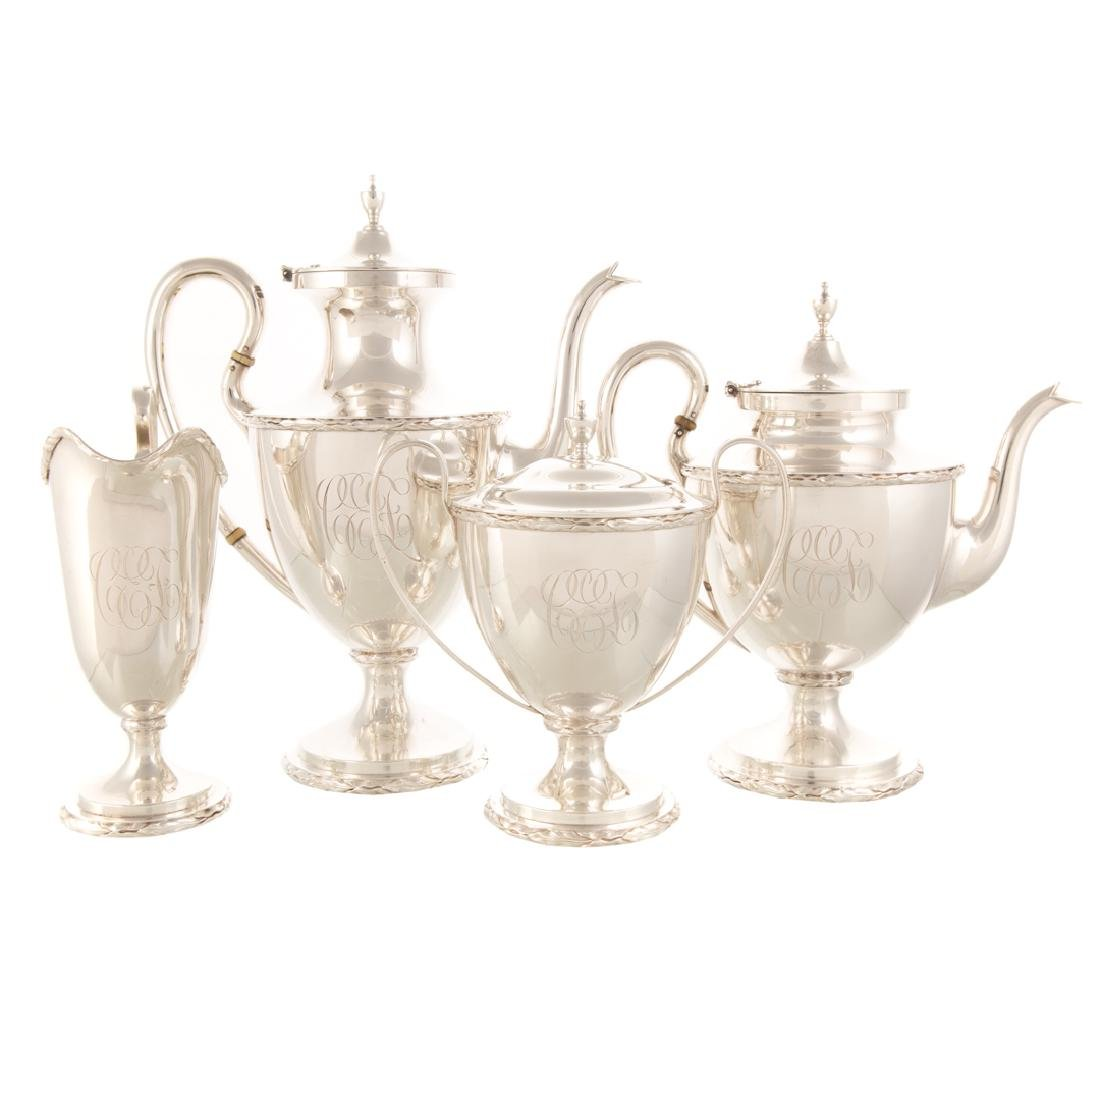 Kirk Neoclassical style sterling coffee & tea set